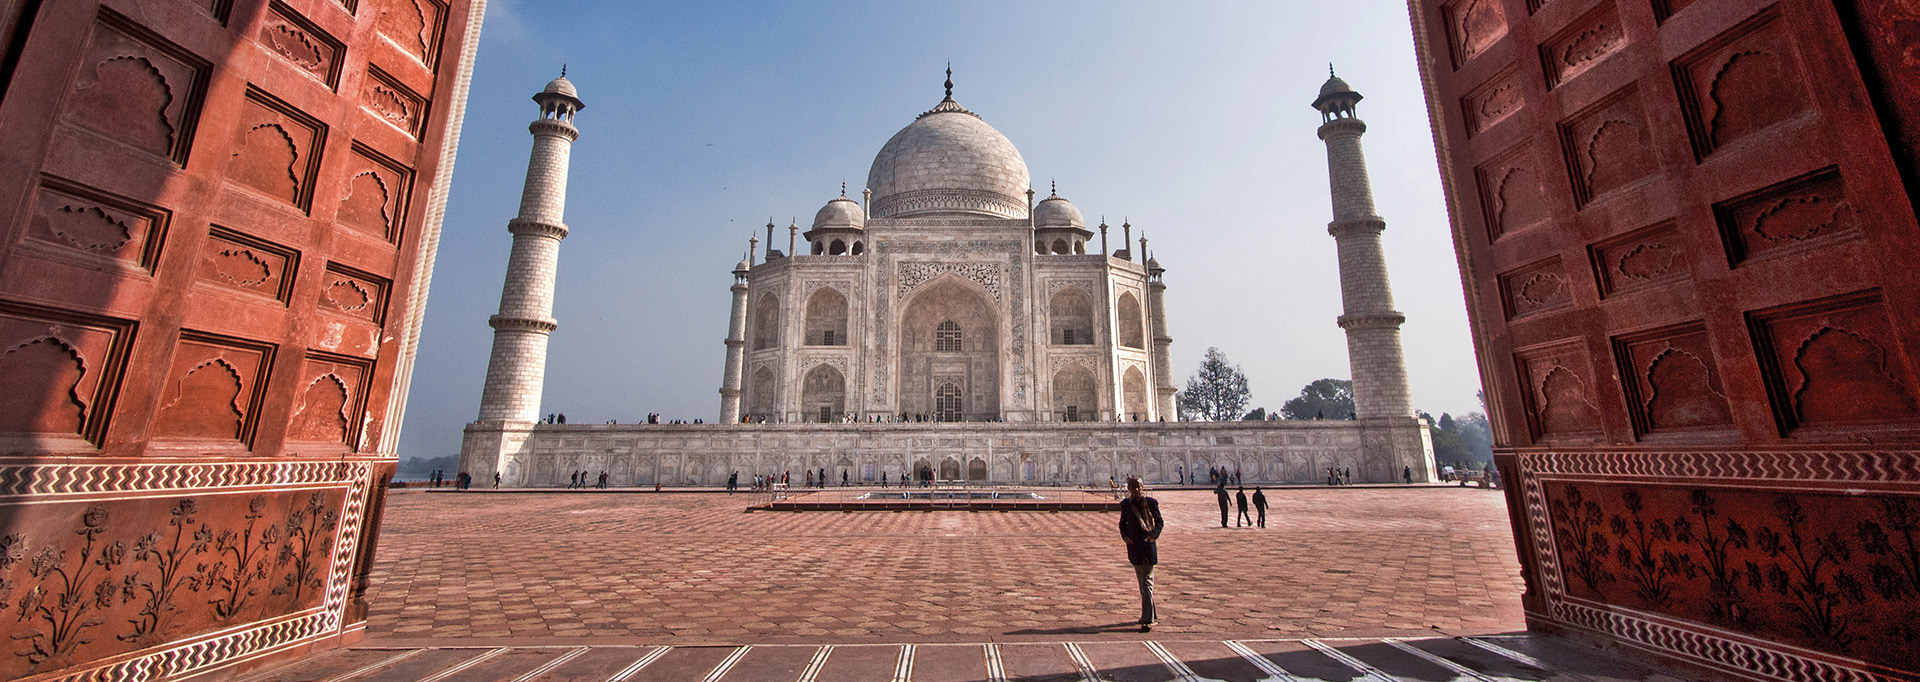 Golden Triangle Tour 5 Days - Perfect Agra Tours